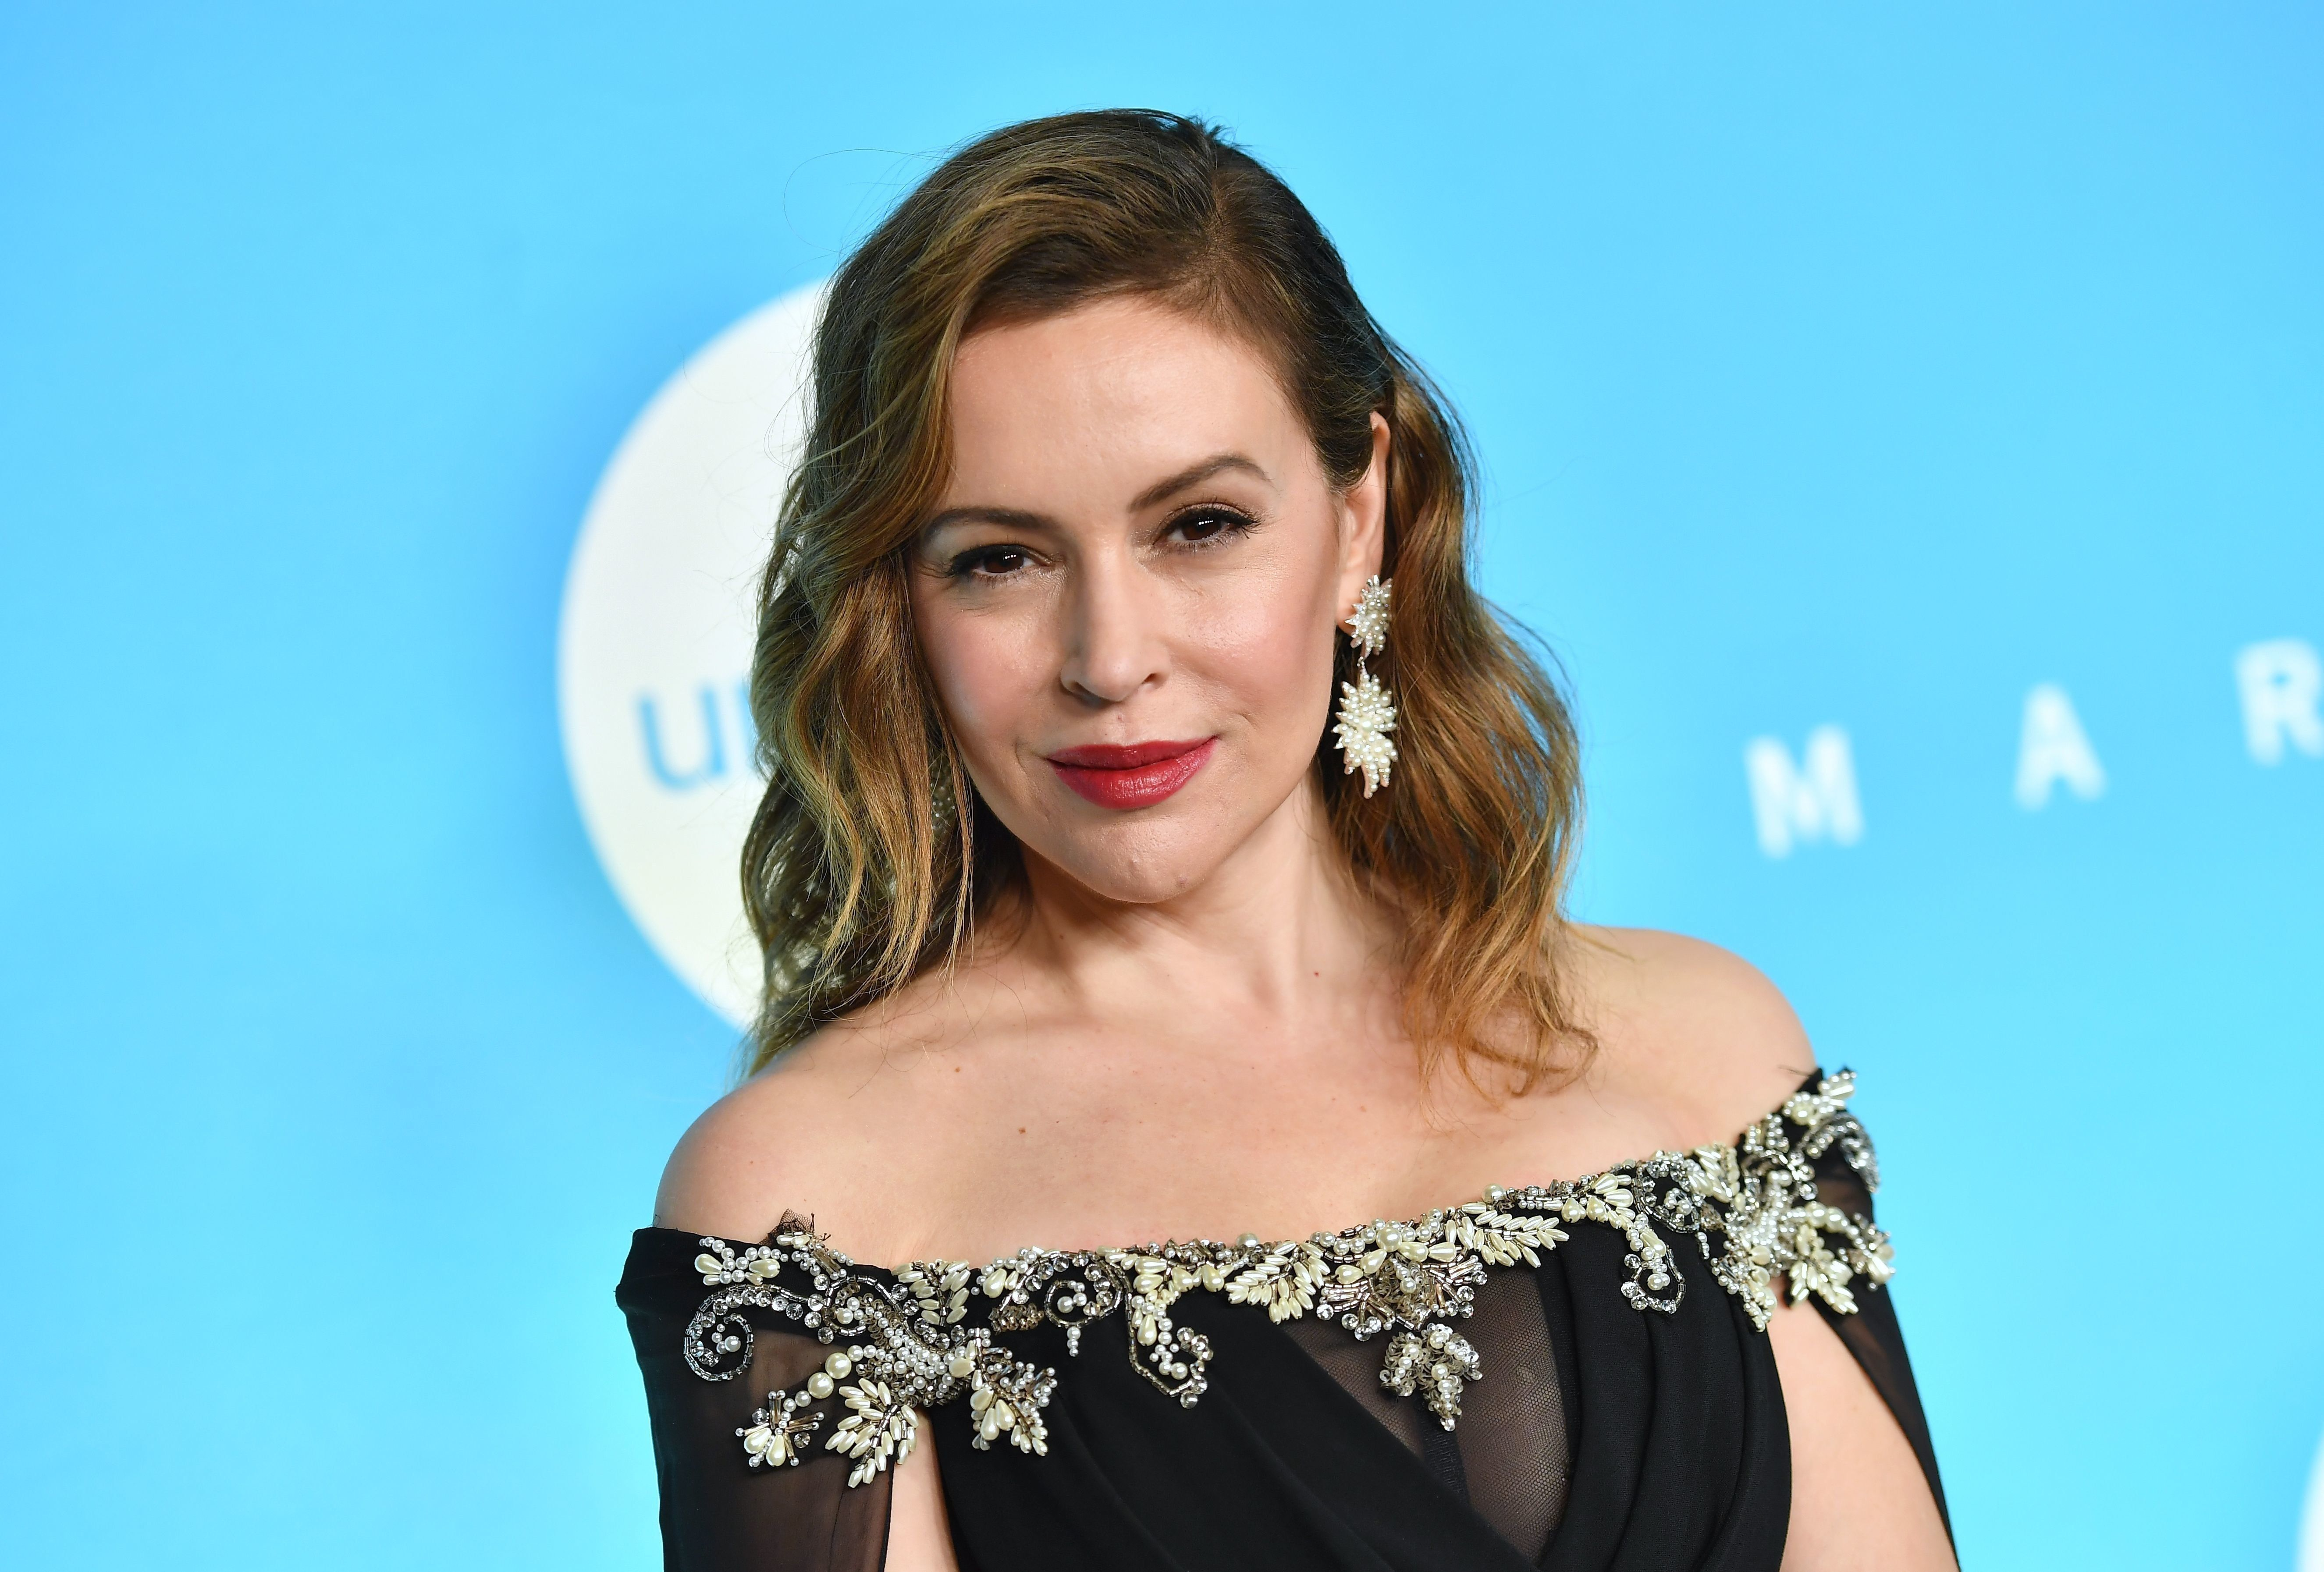 Actress Alyssa Milano attends the 14th Annual UNICEF Snowflake Ball on November 27, 2018 in New York City. (Photo by Angela Weiss / AFP)        (Photo credit should read ANGELA WEISS/AFP/Getty Images)